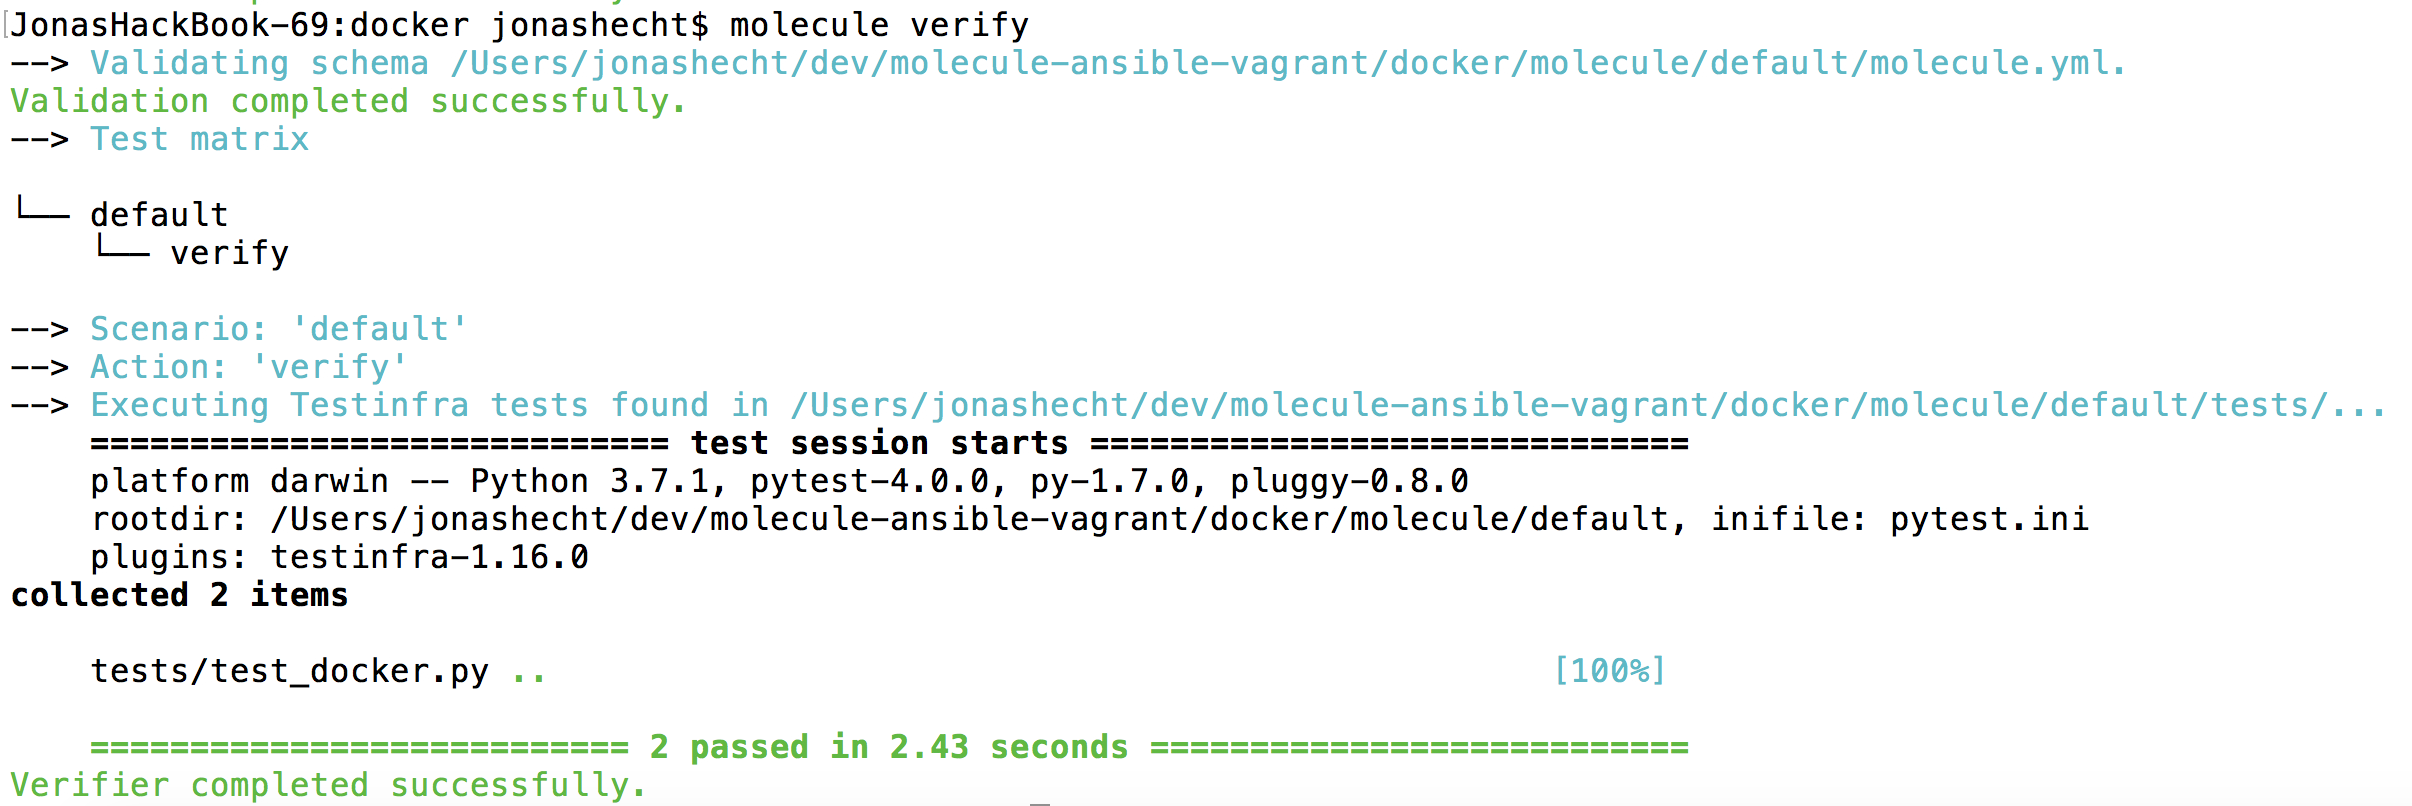 verify-with-deprecation-warnings-ignored